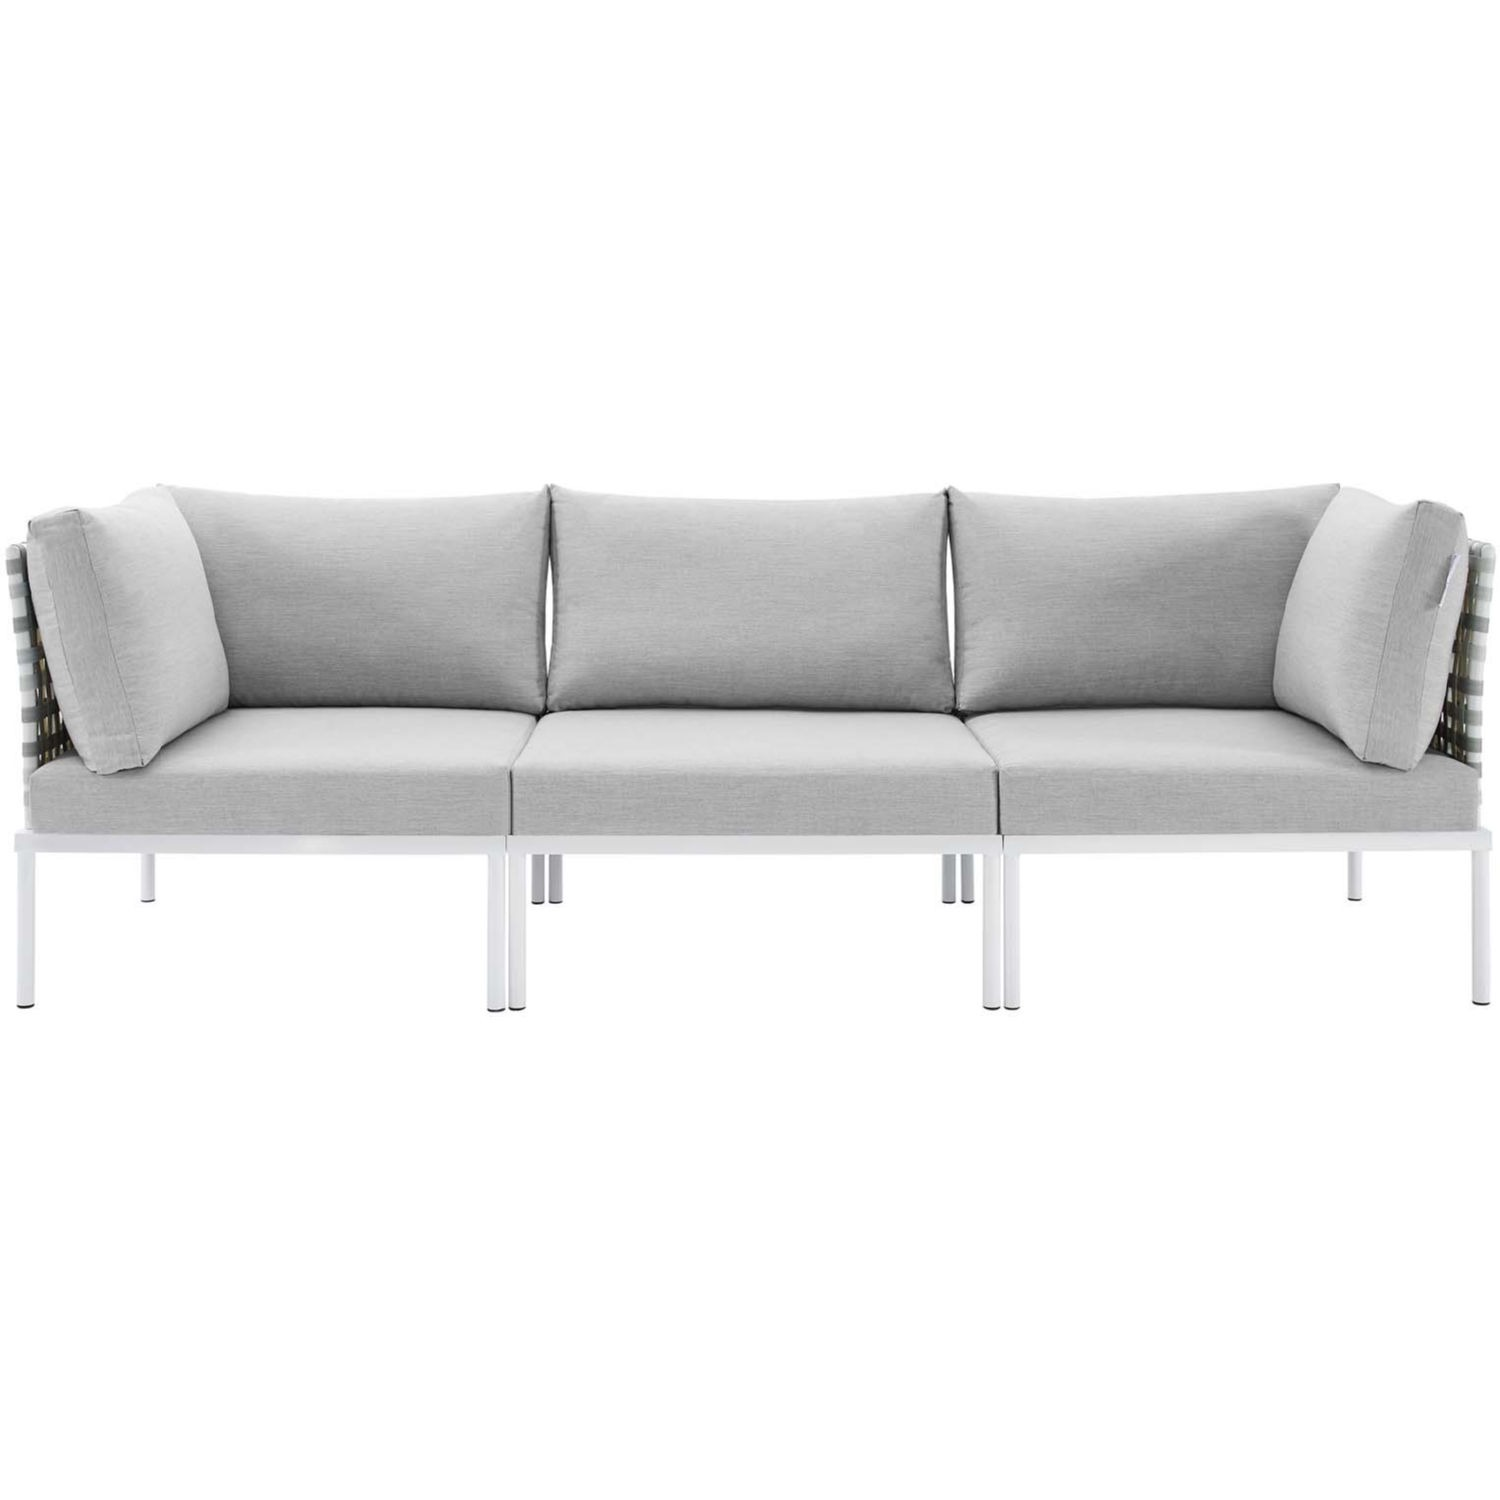 Outdoor Patio Sofa In Taupe Gray Cushion Fabric - image-1